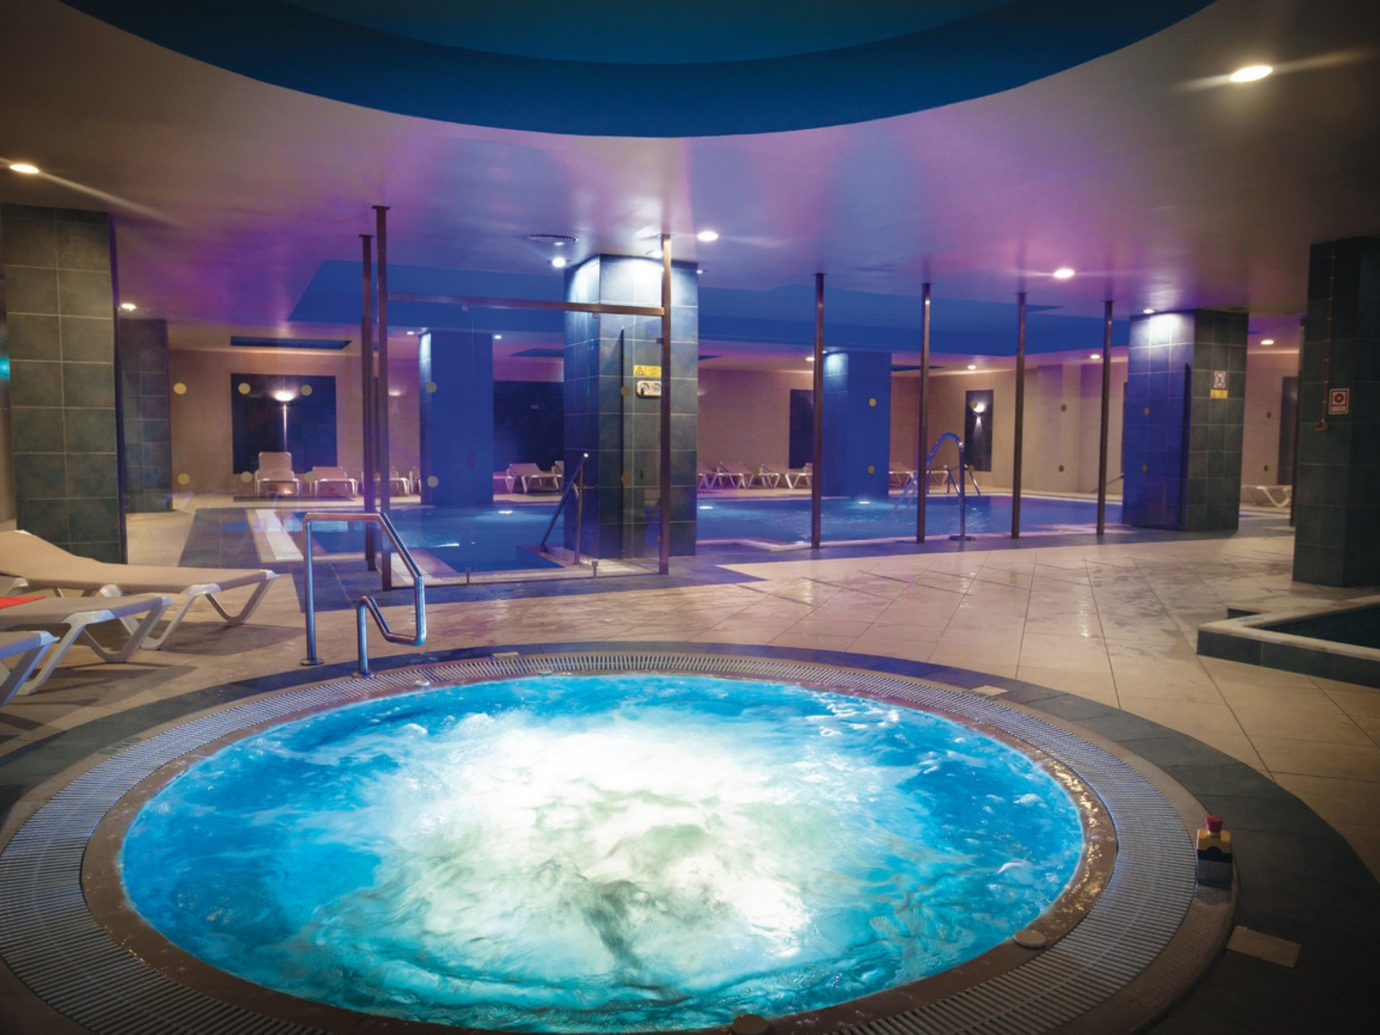 All-Inclusive Resorts Hotels ceiling indoor swimming pool leisure thermae Pool leisure centre jacuzzi blue hotel estate interior design amenity resort town Resort